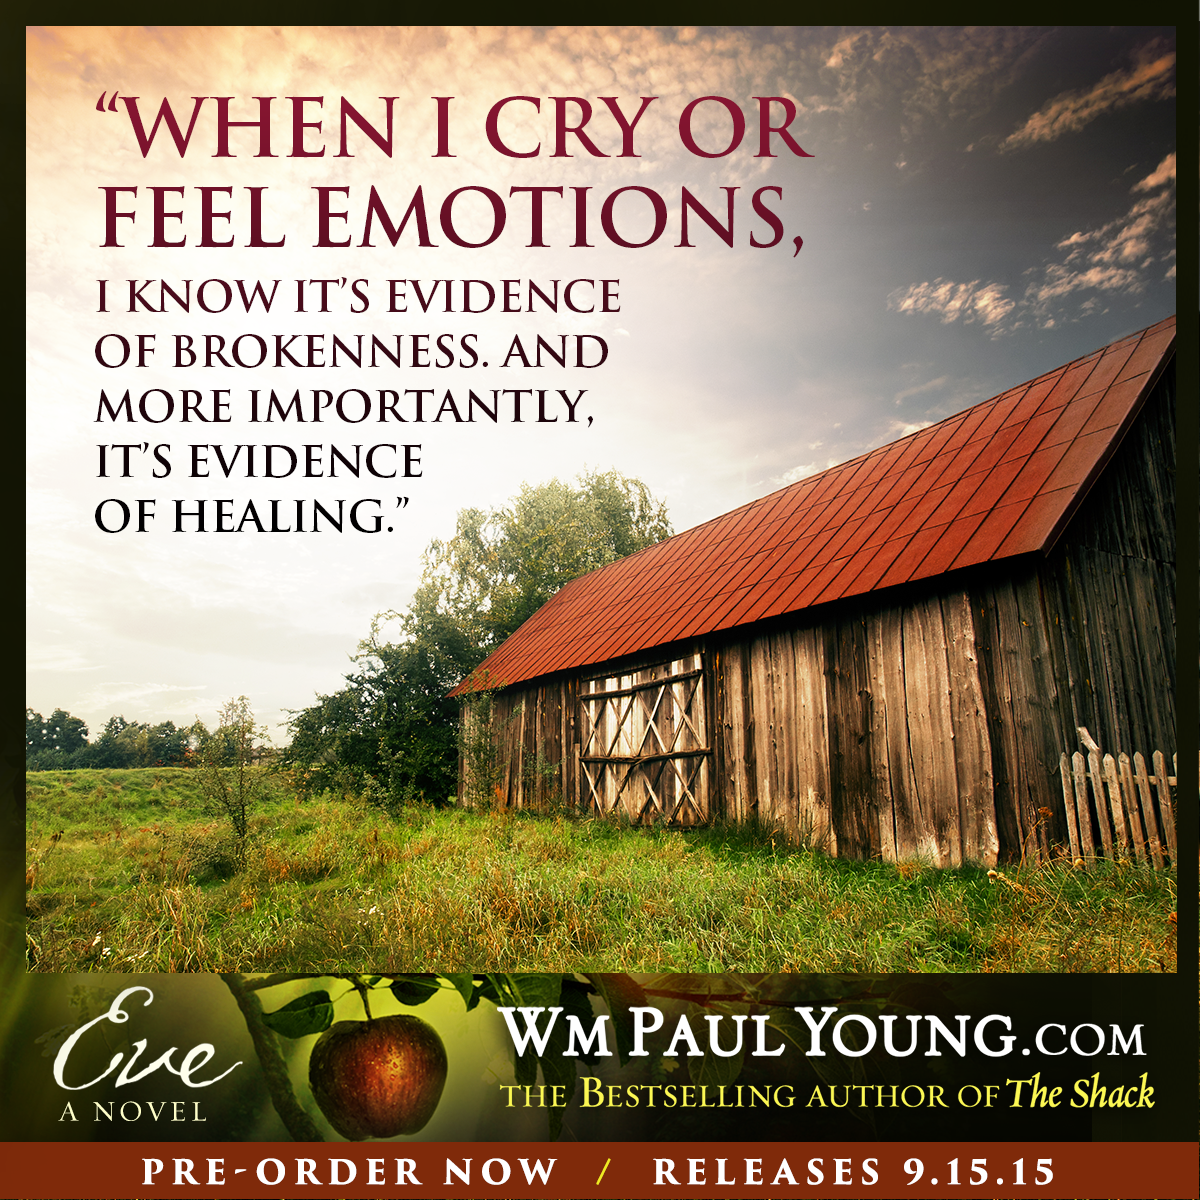 Farm Quotes 5 Quotes From William Paul Young  Wmpaul Young